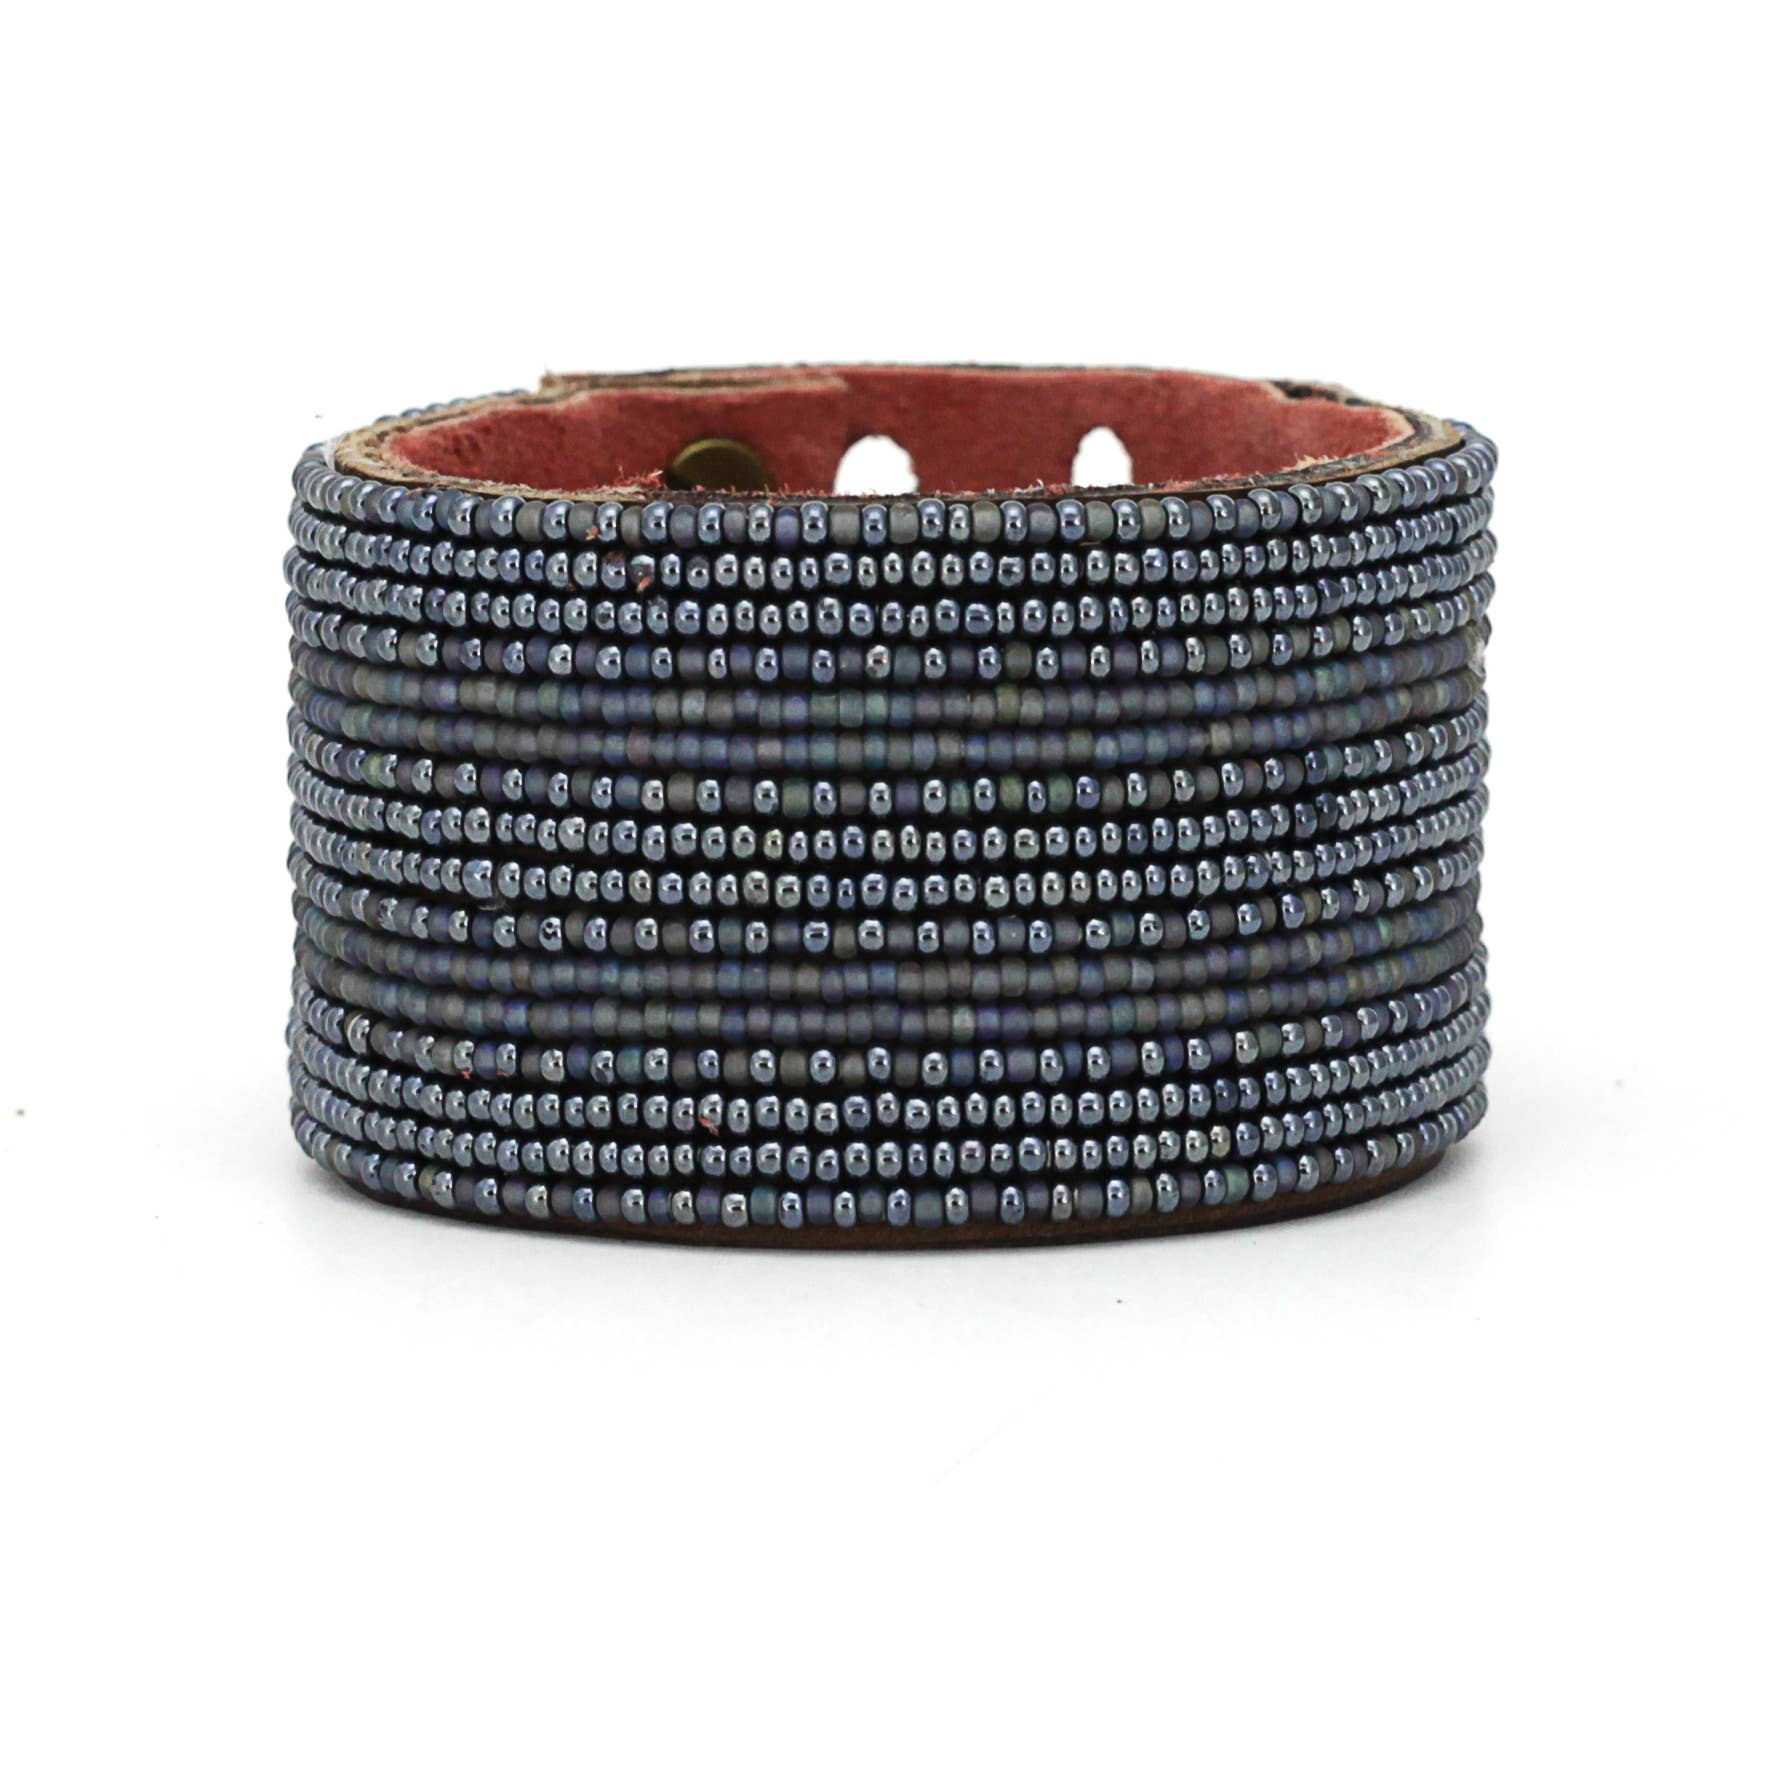 Swahili Coast - Large Slate and Grey Stripe Leather Cuff - Limited Edition